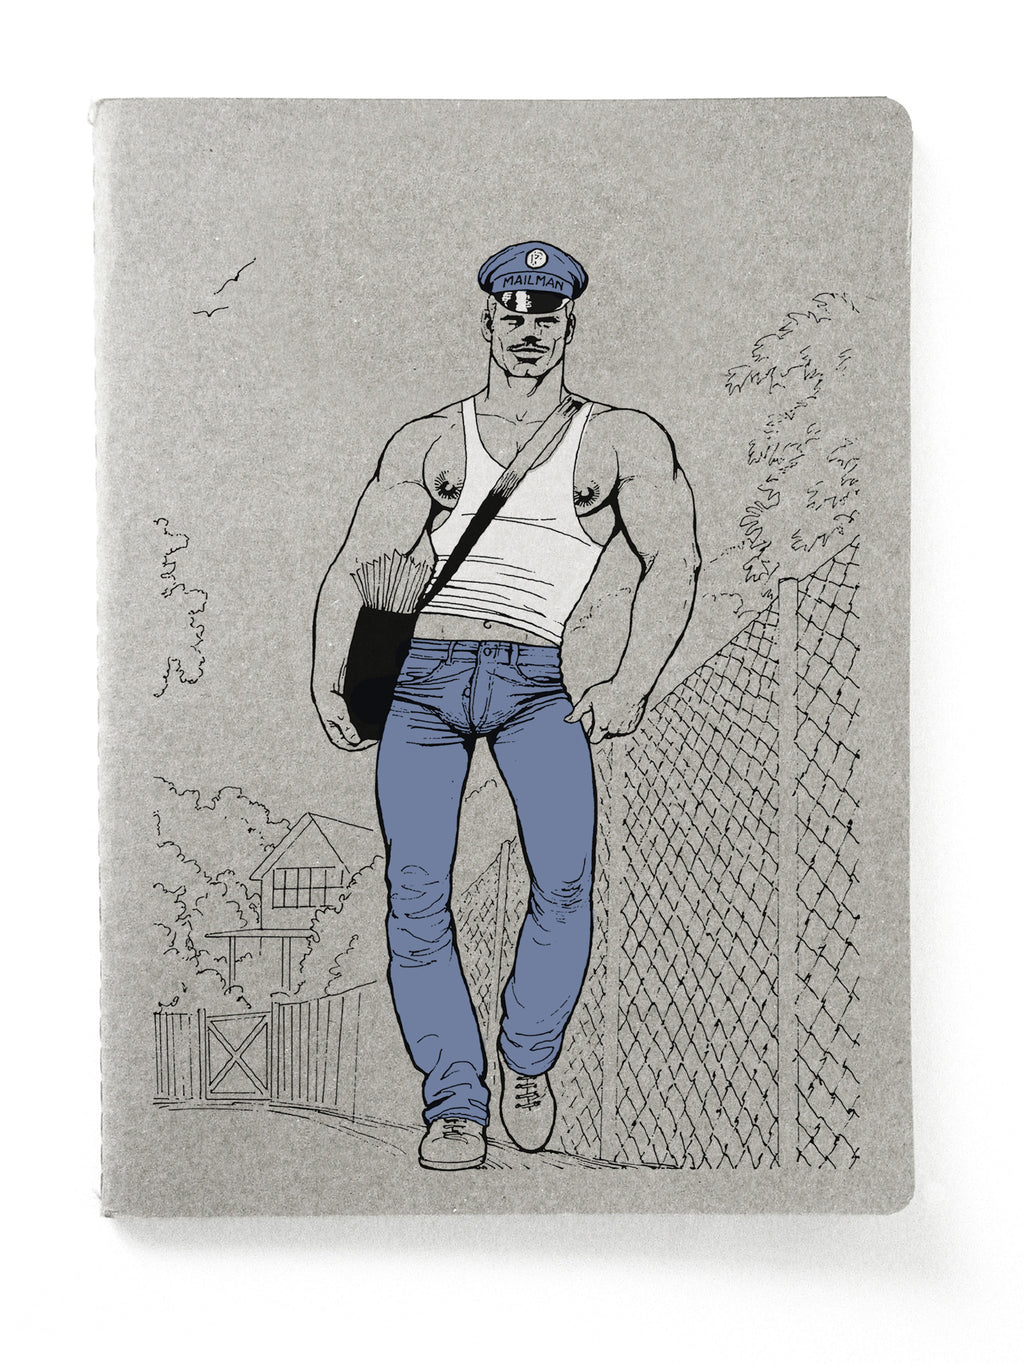 Mailman Sewn-Bound Notebook